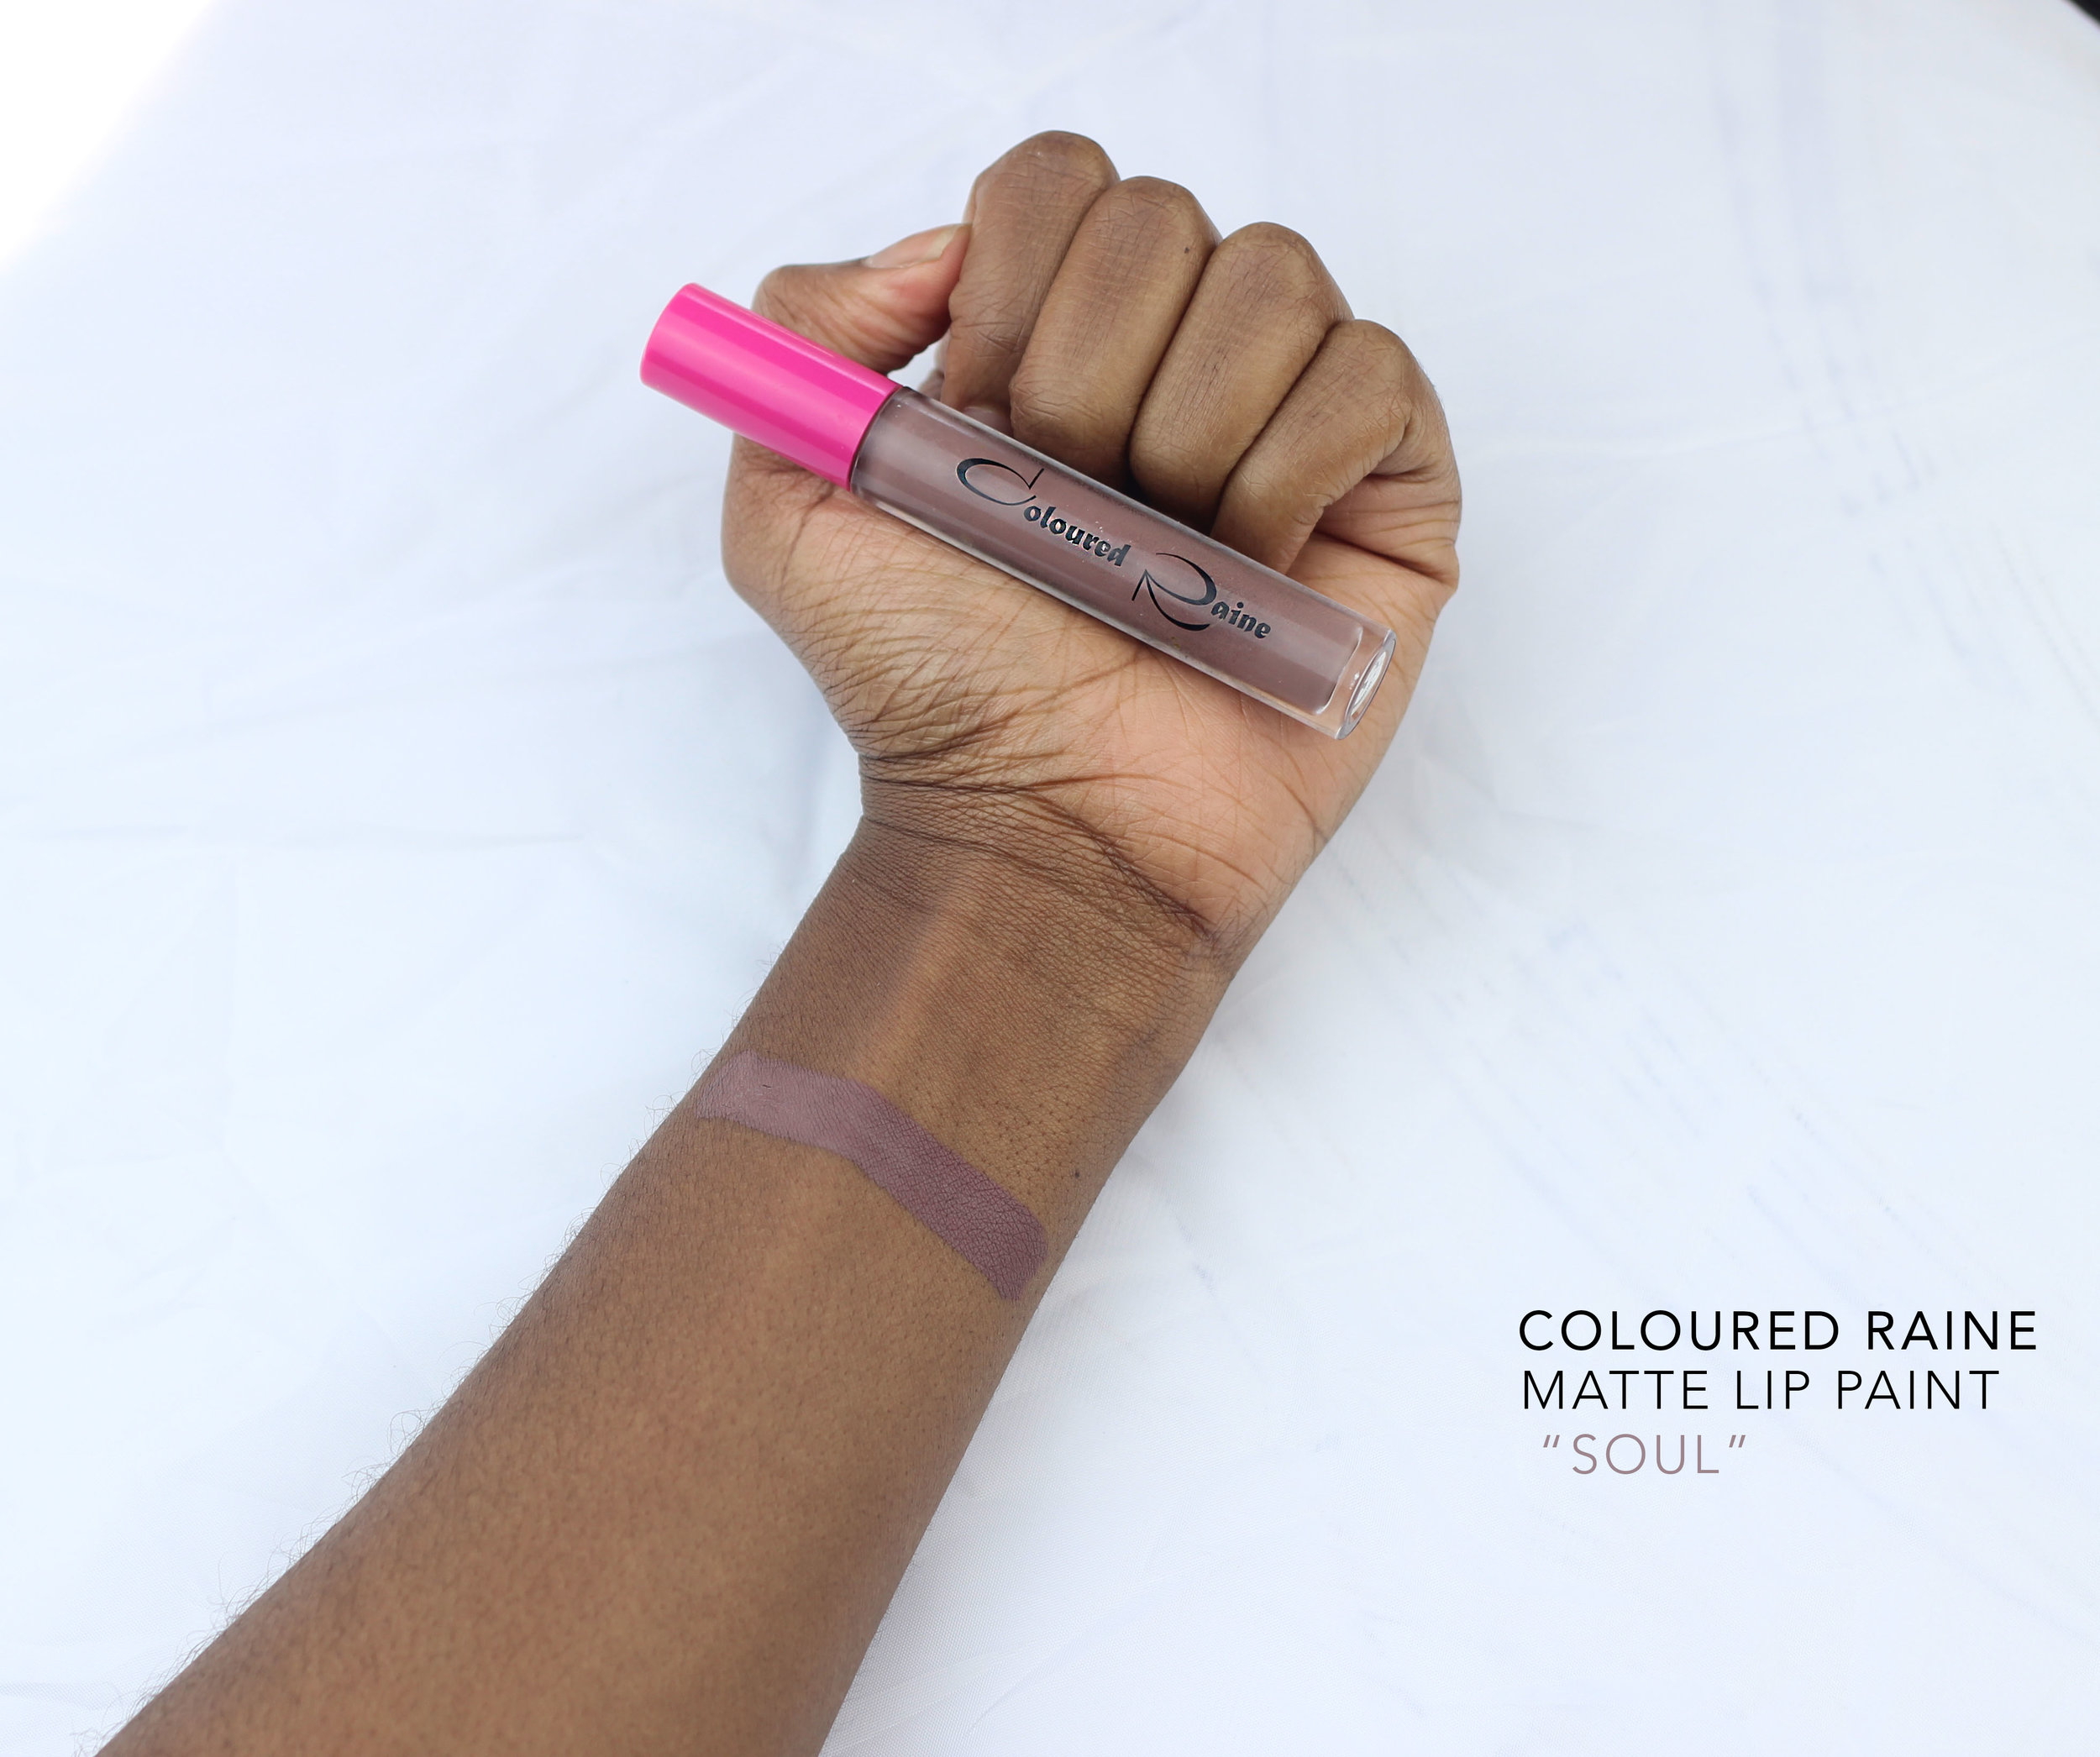 coloured raine soul swatch